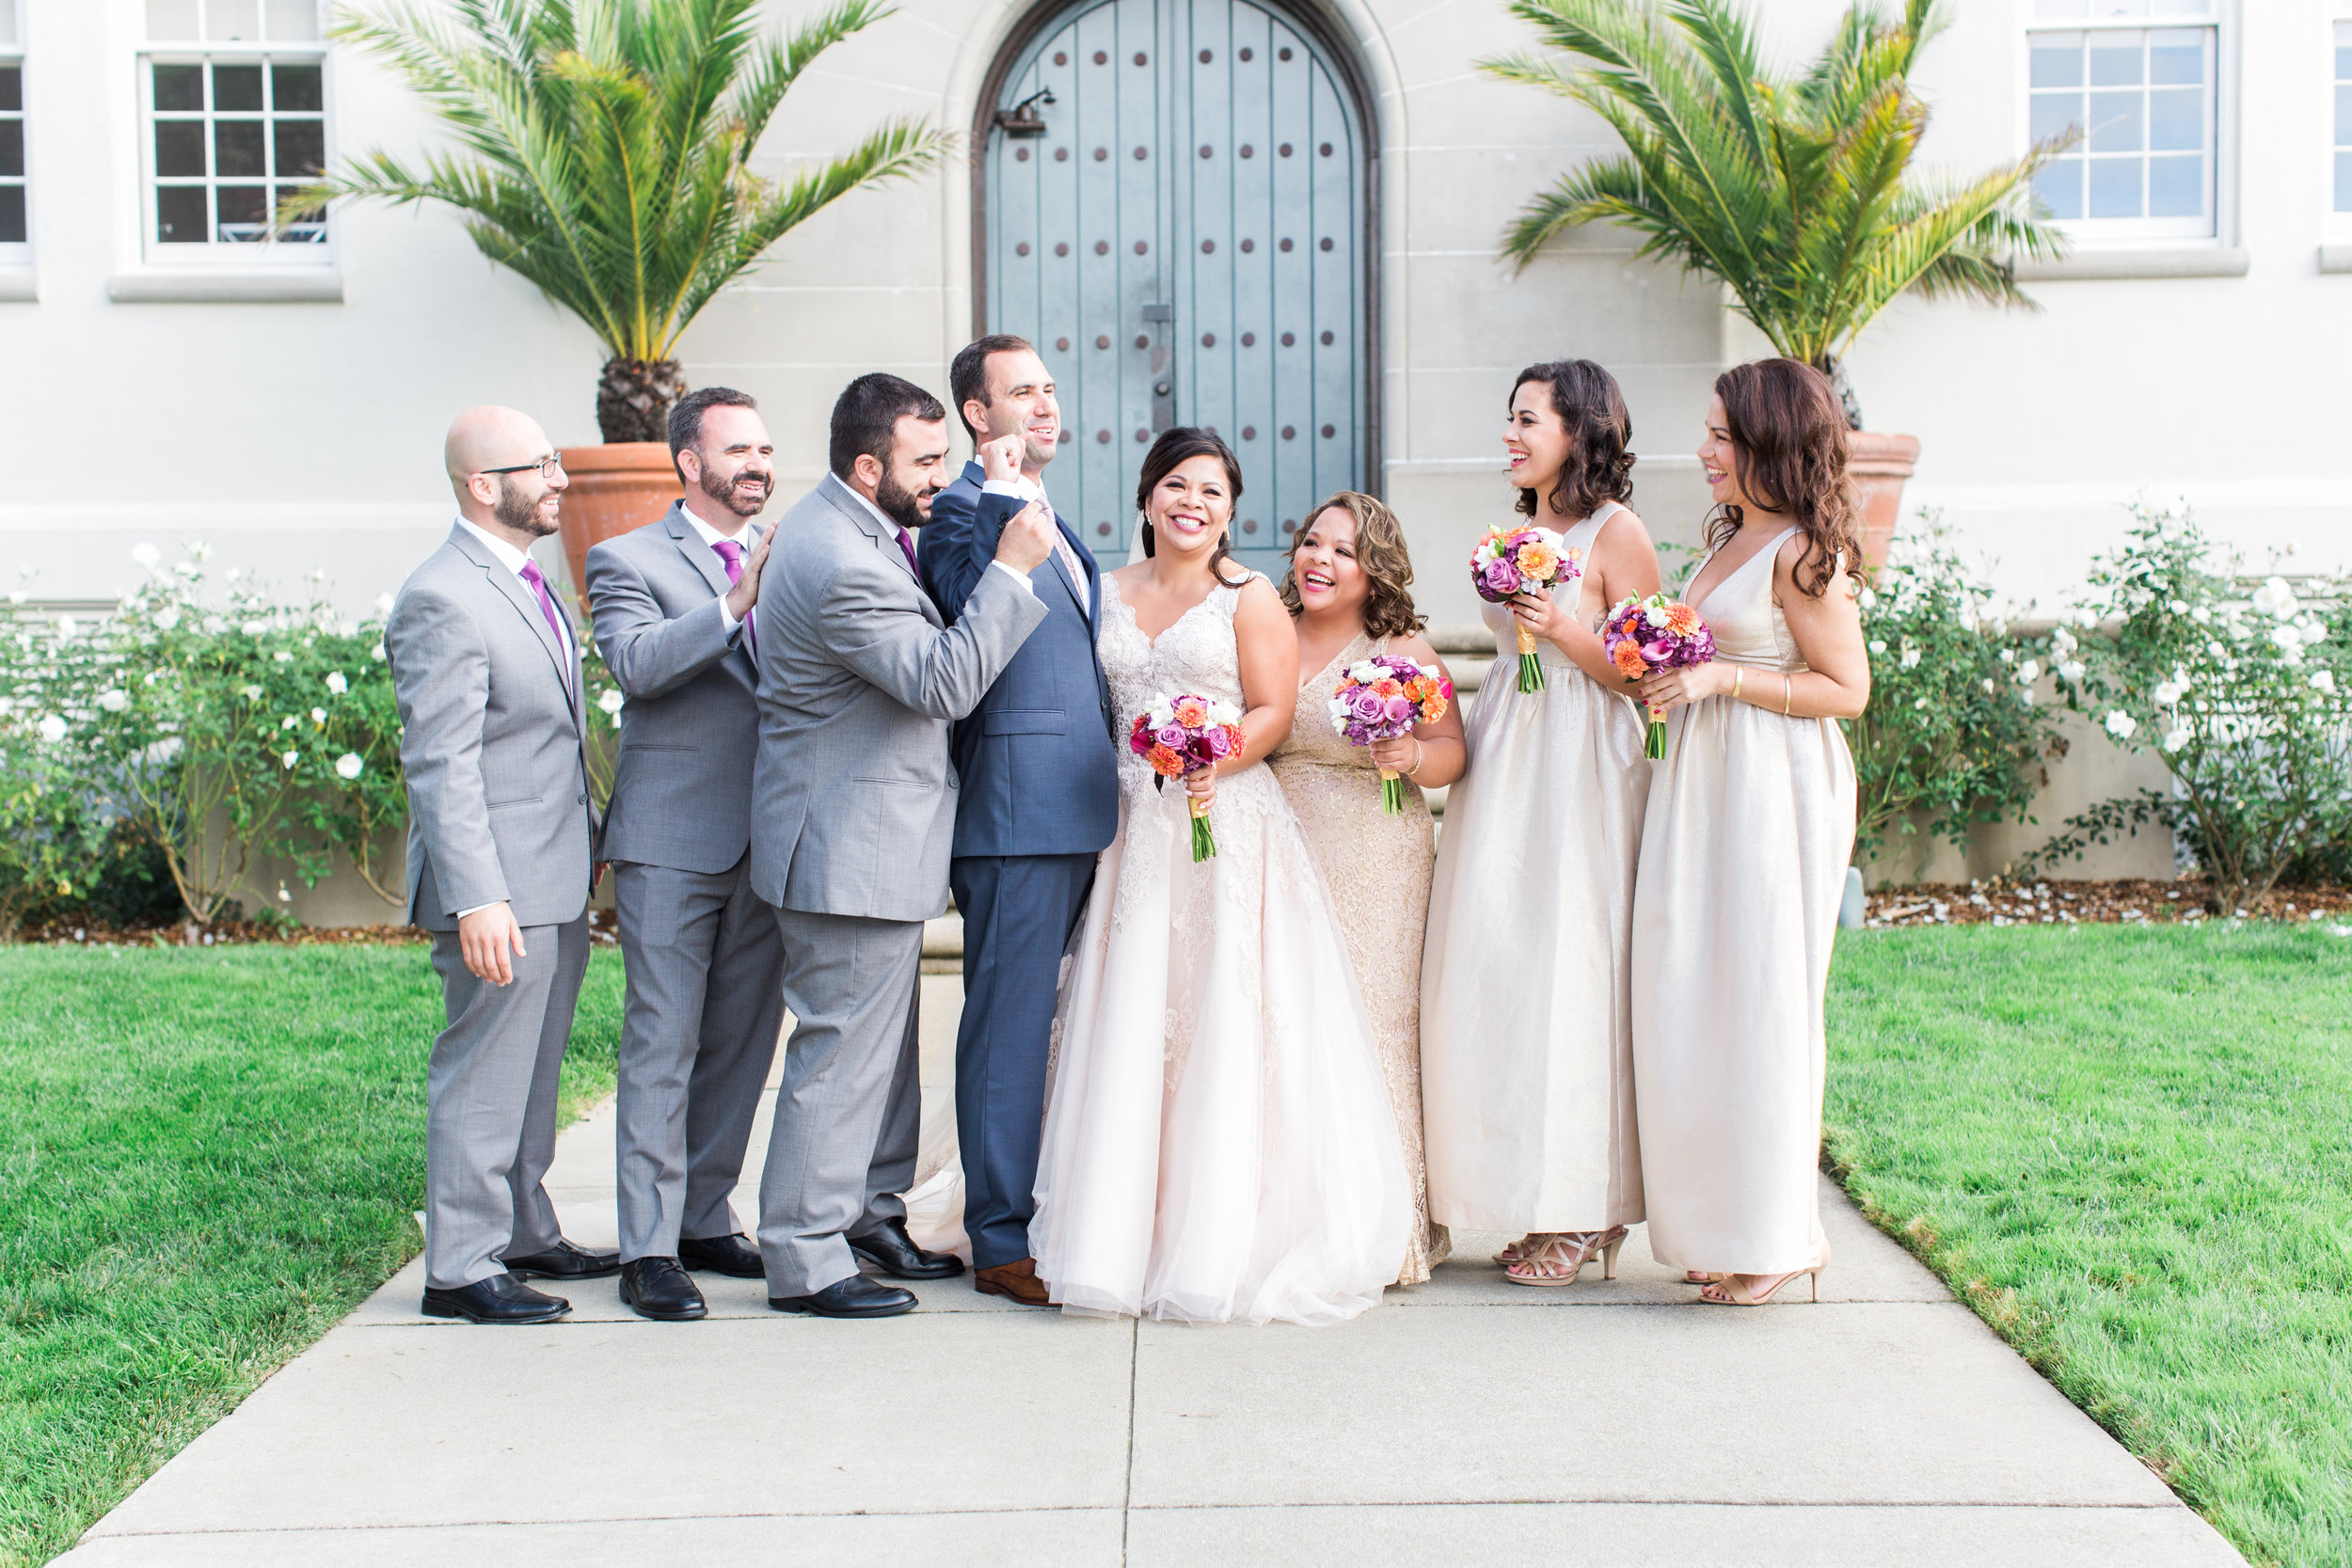 style-inspired-wedding-at-firehouse-8-in-san-francisco-52.jpg